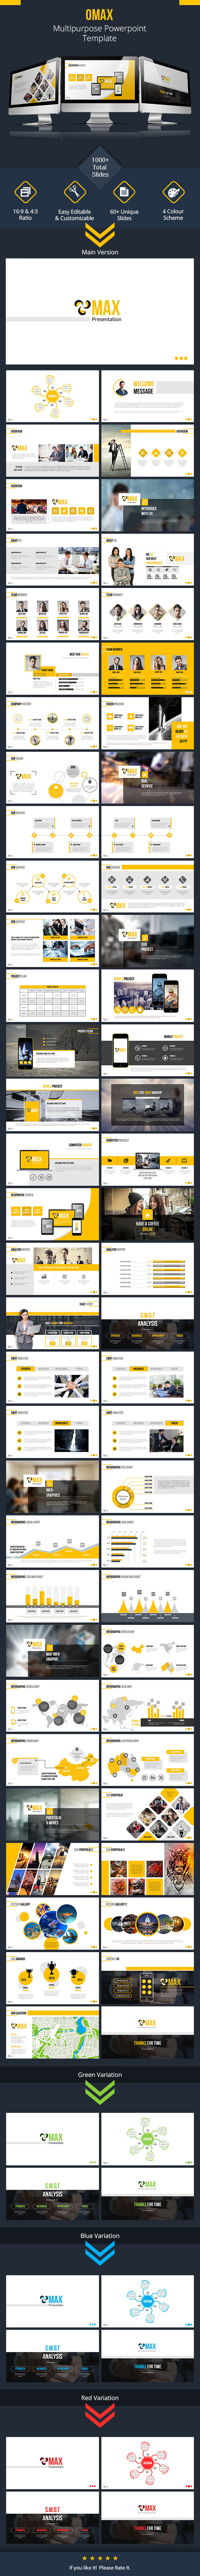 Omax Powerpoint Presentation Template - Business PowerPoint Templates